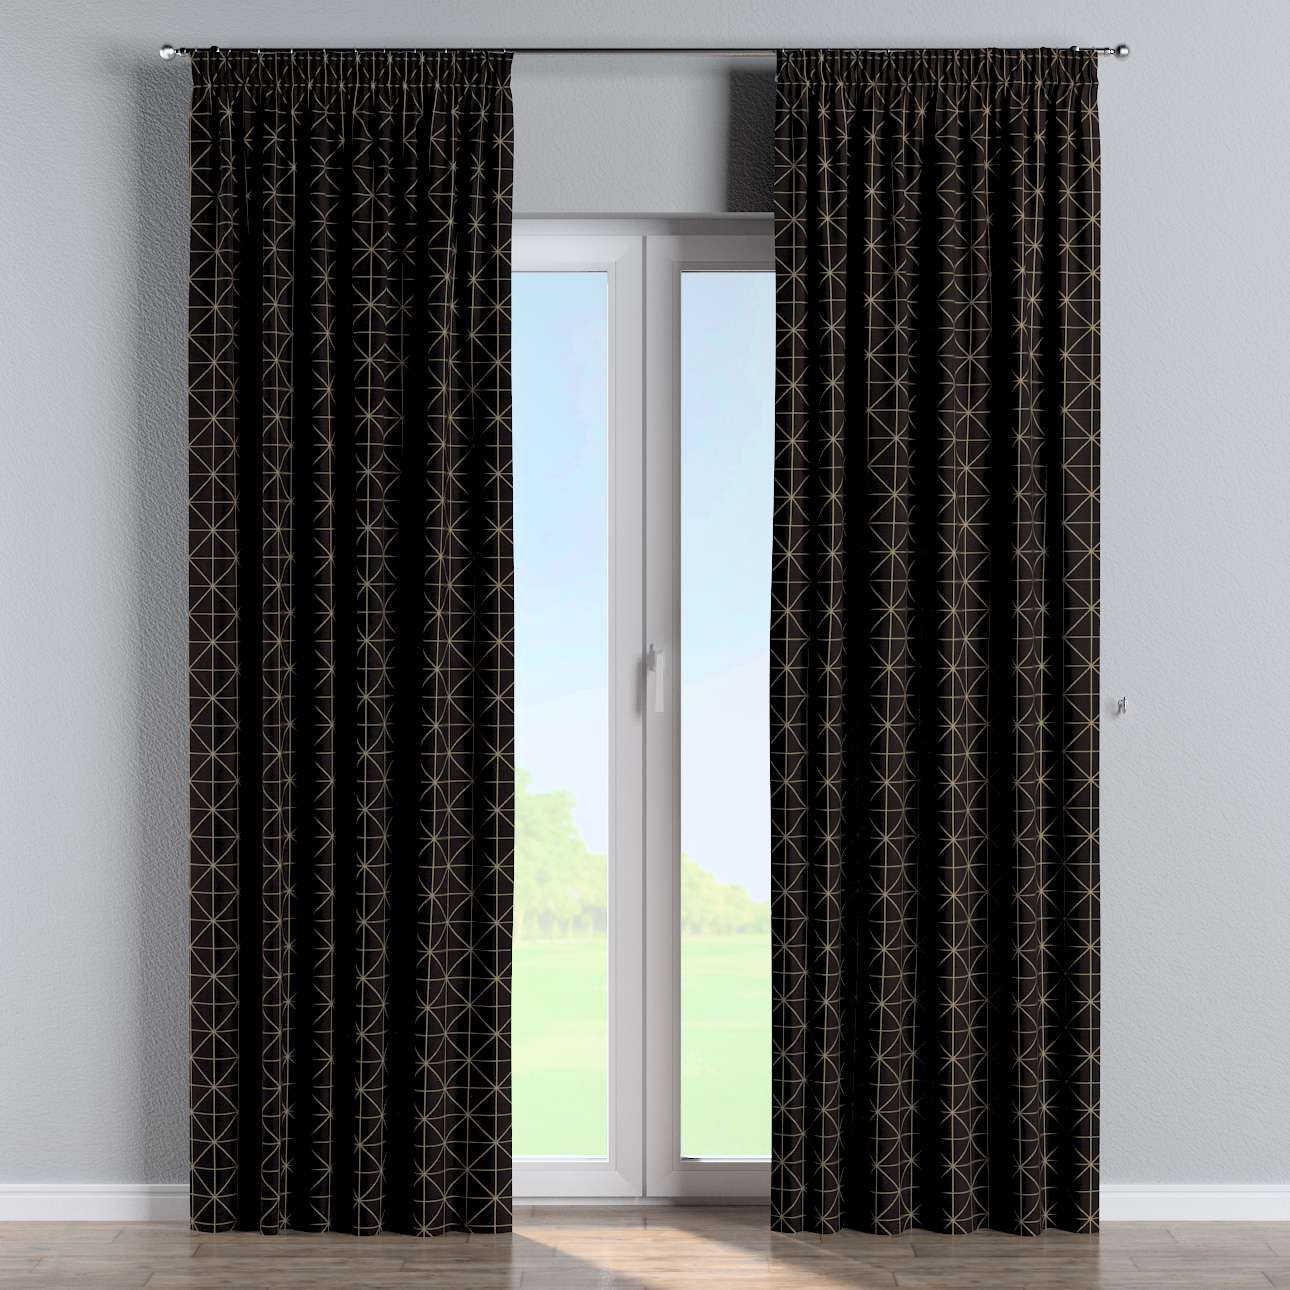 Pencil pleat curtains in collection Black & White, fabric: 142-55